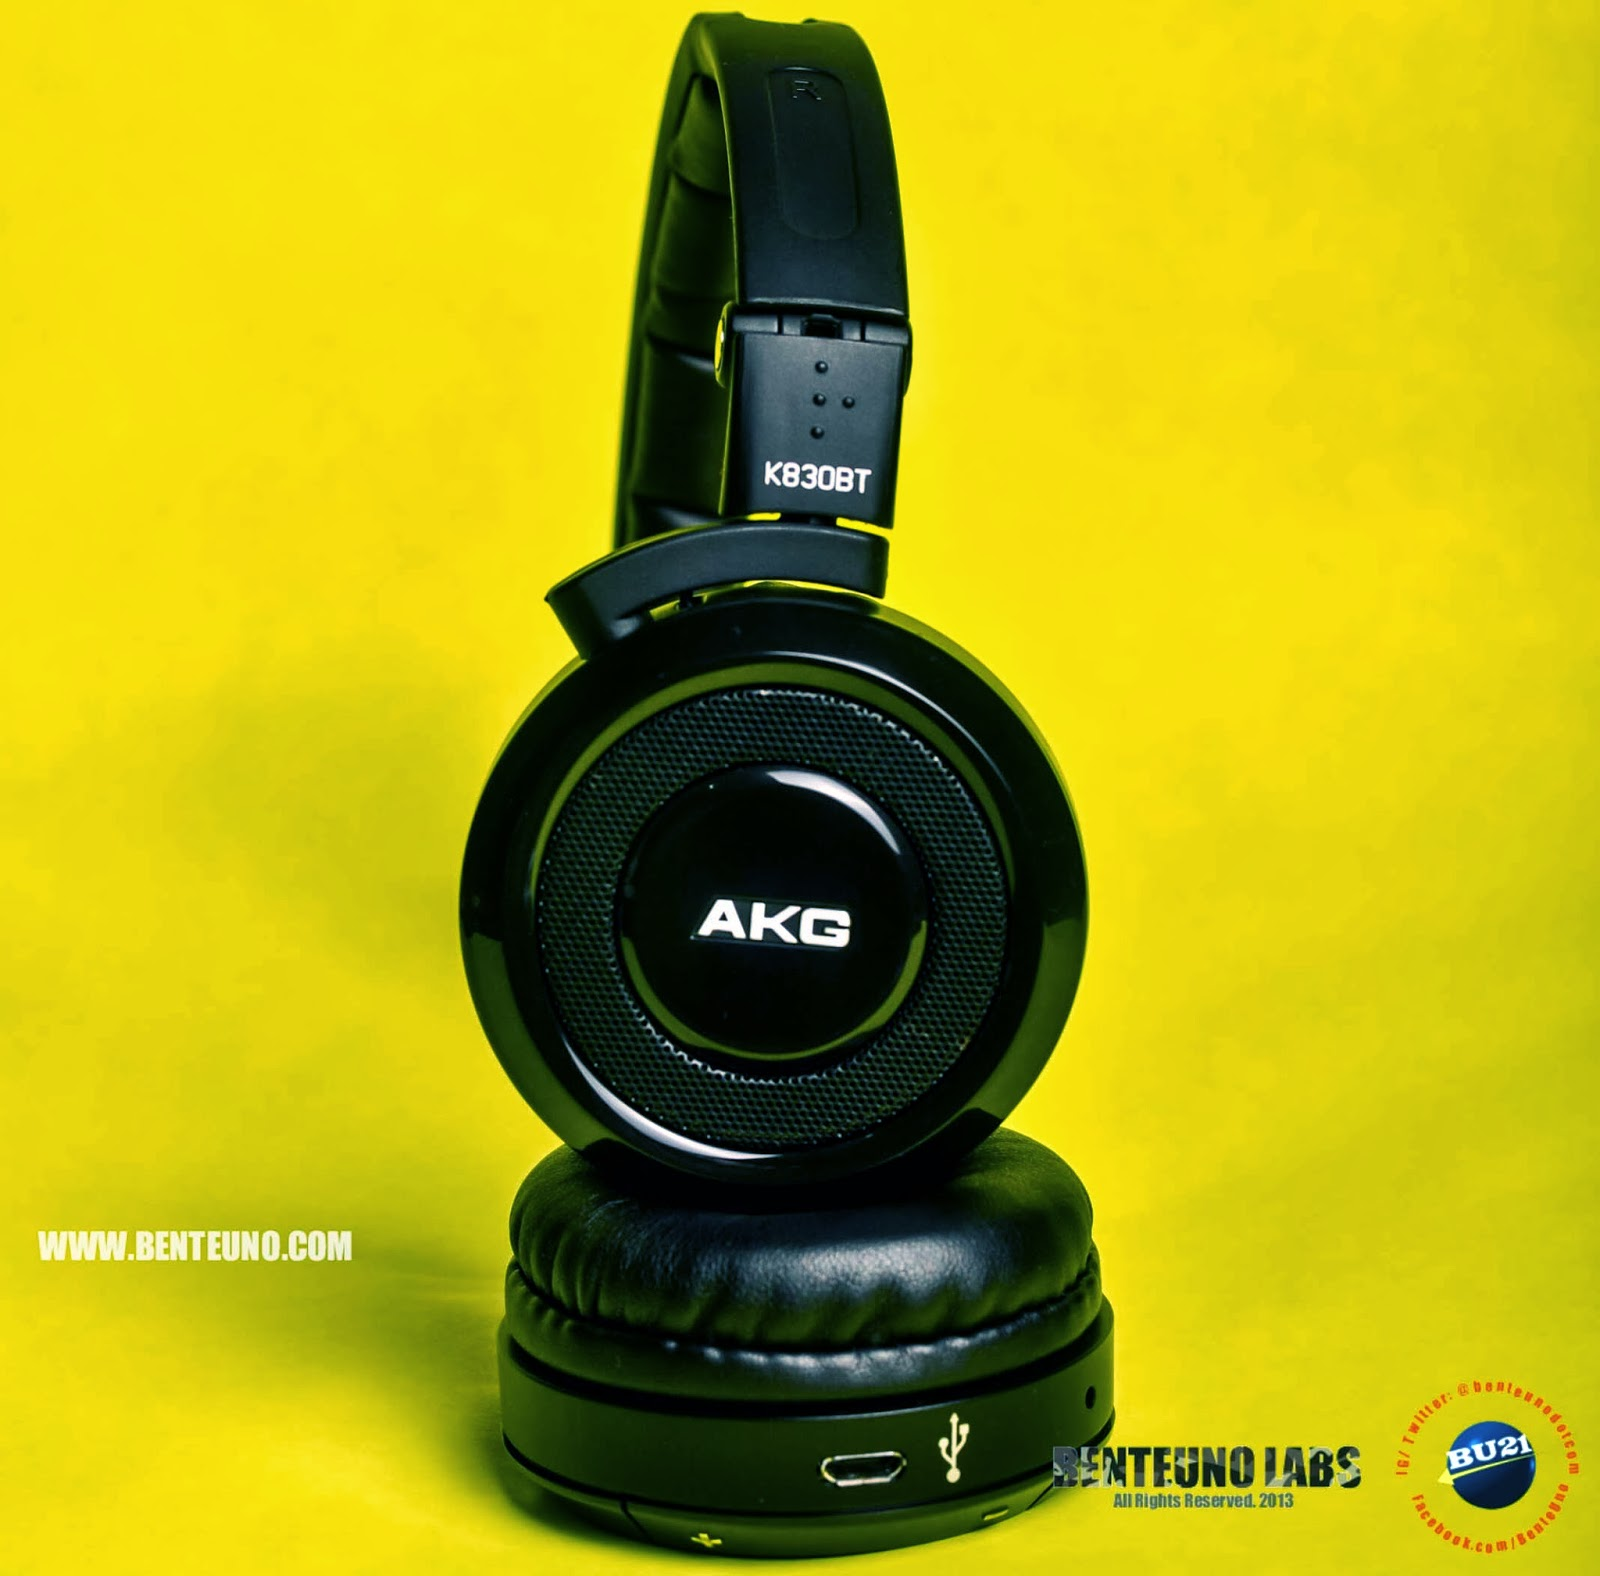 AKG K830 BT Wireless headphones picture